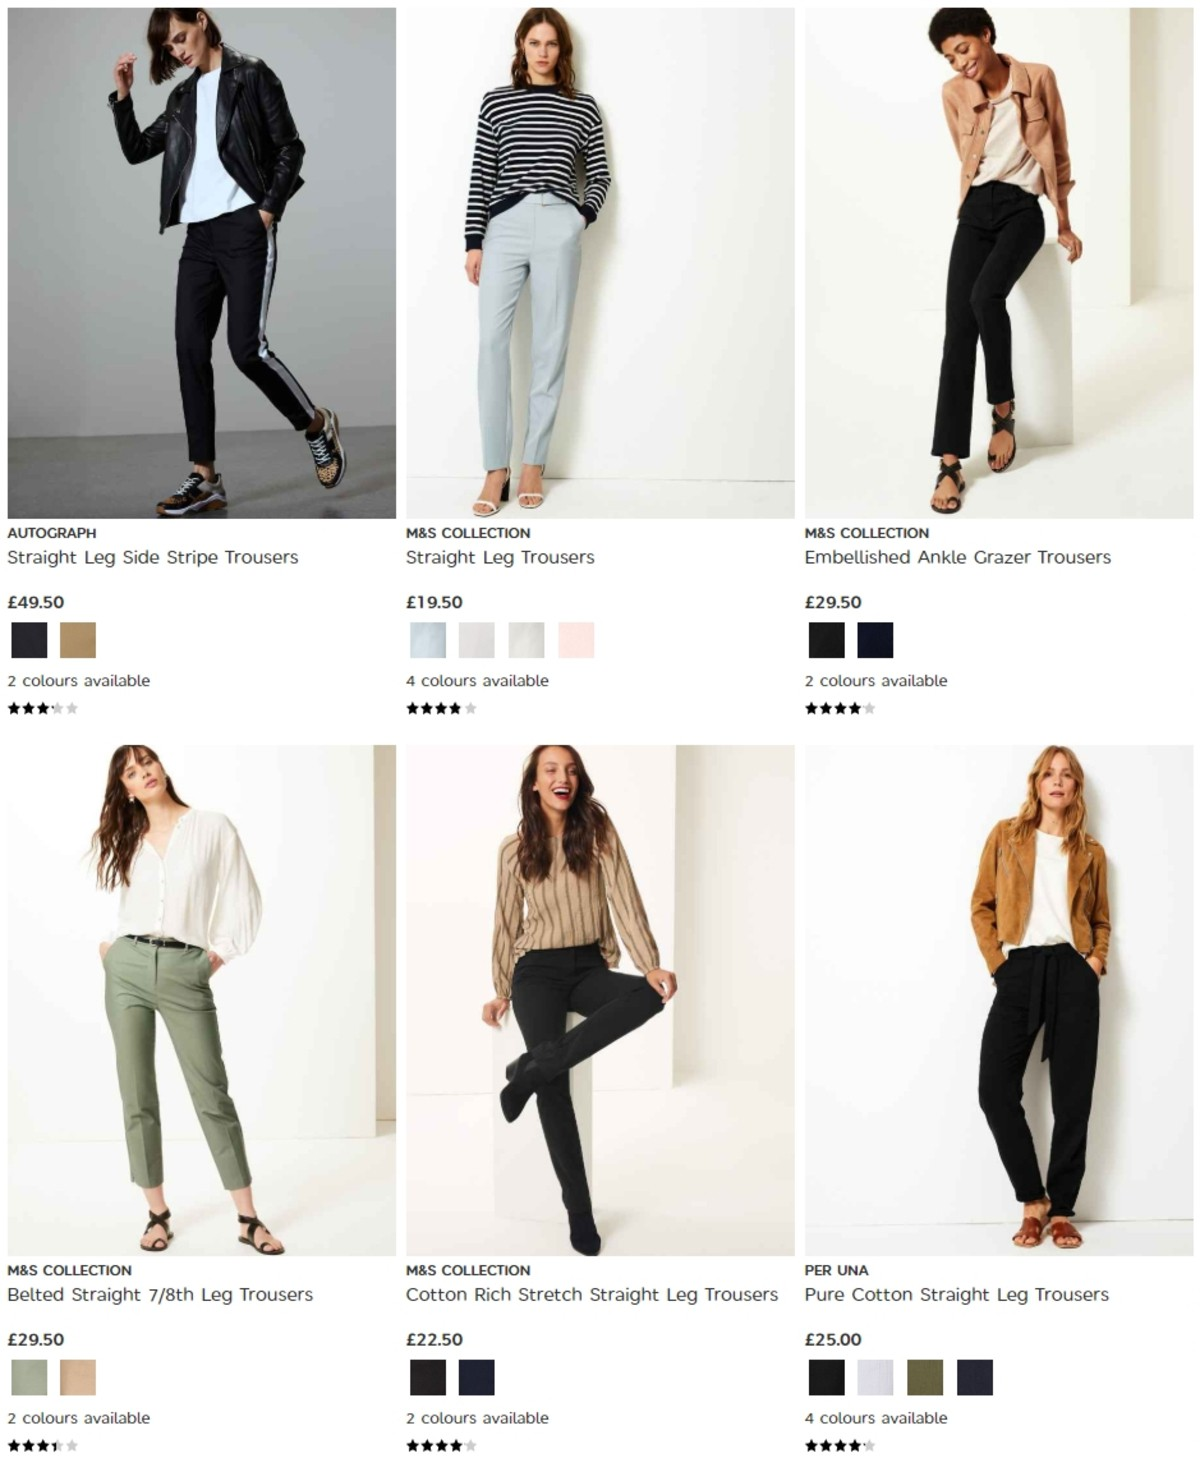 M&S Marks and Spencer Offers from May 21